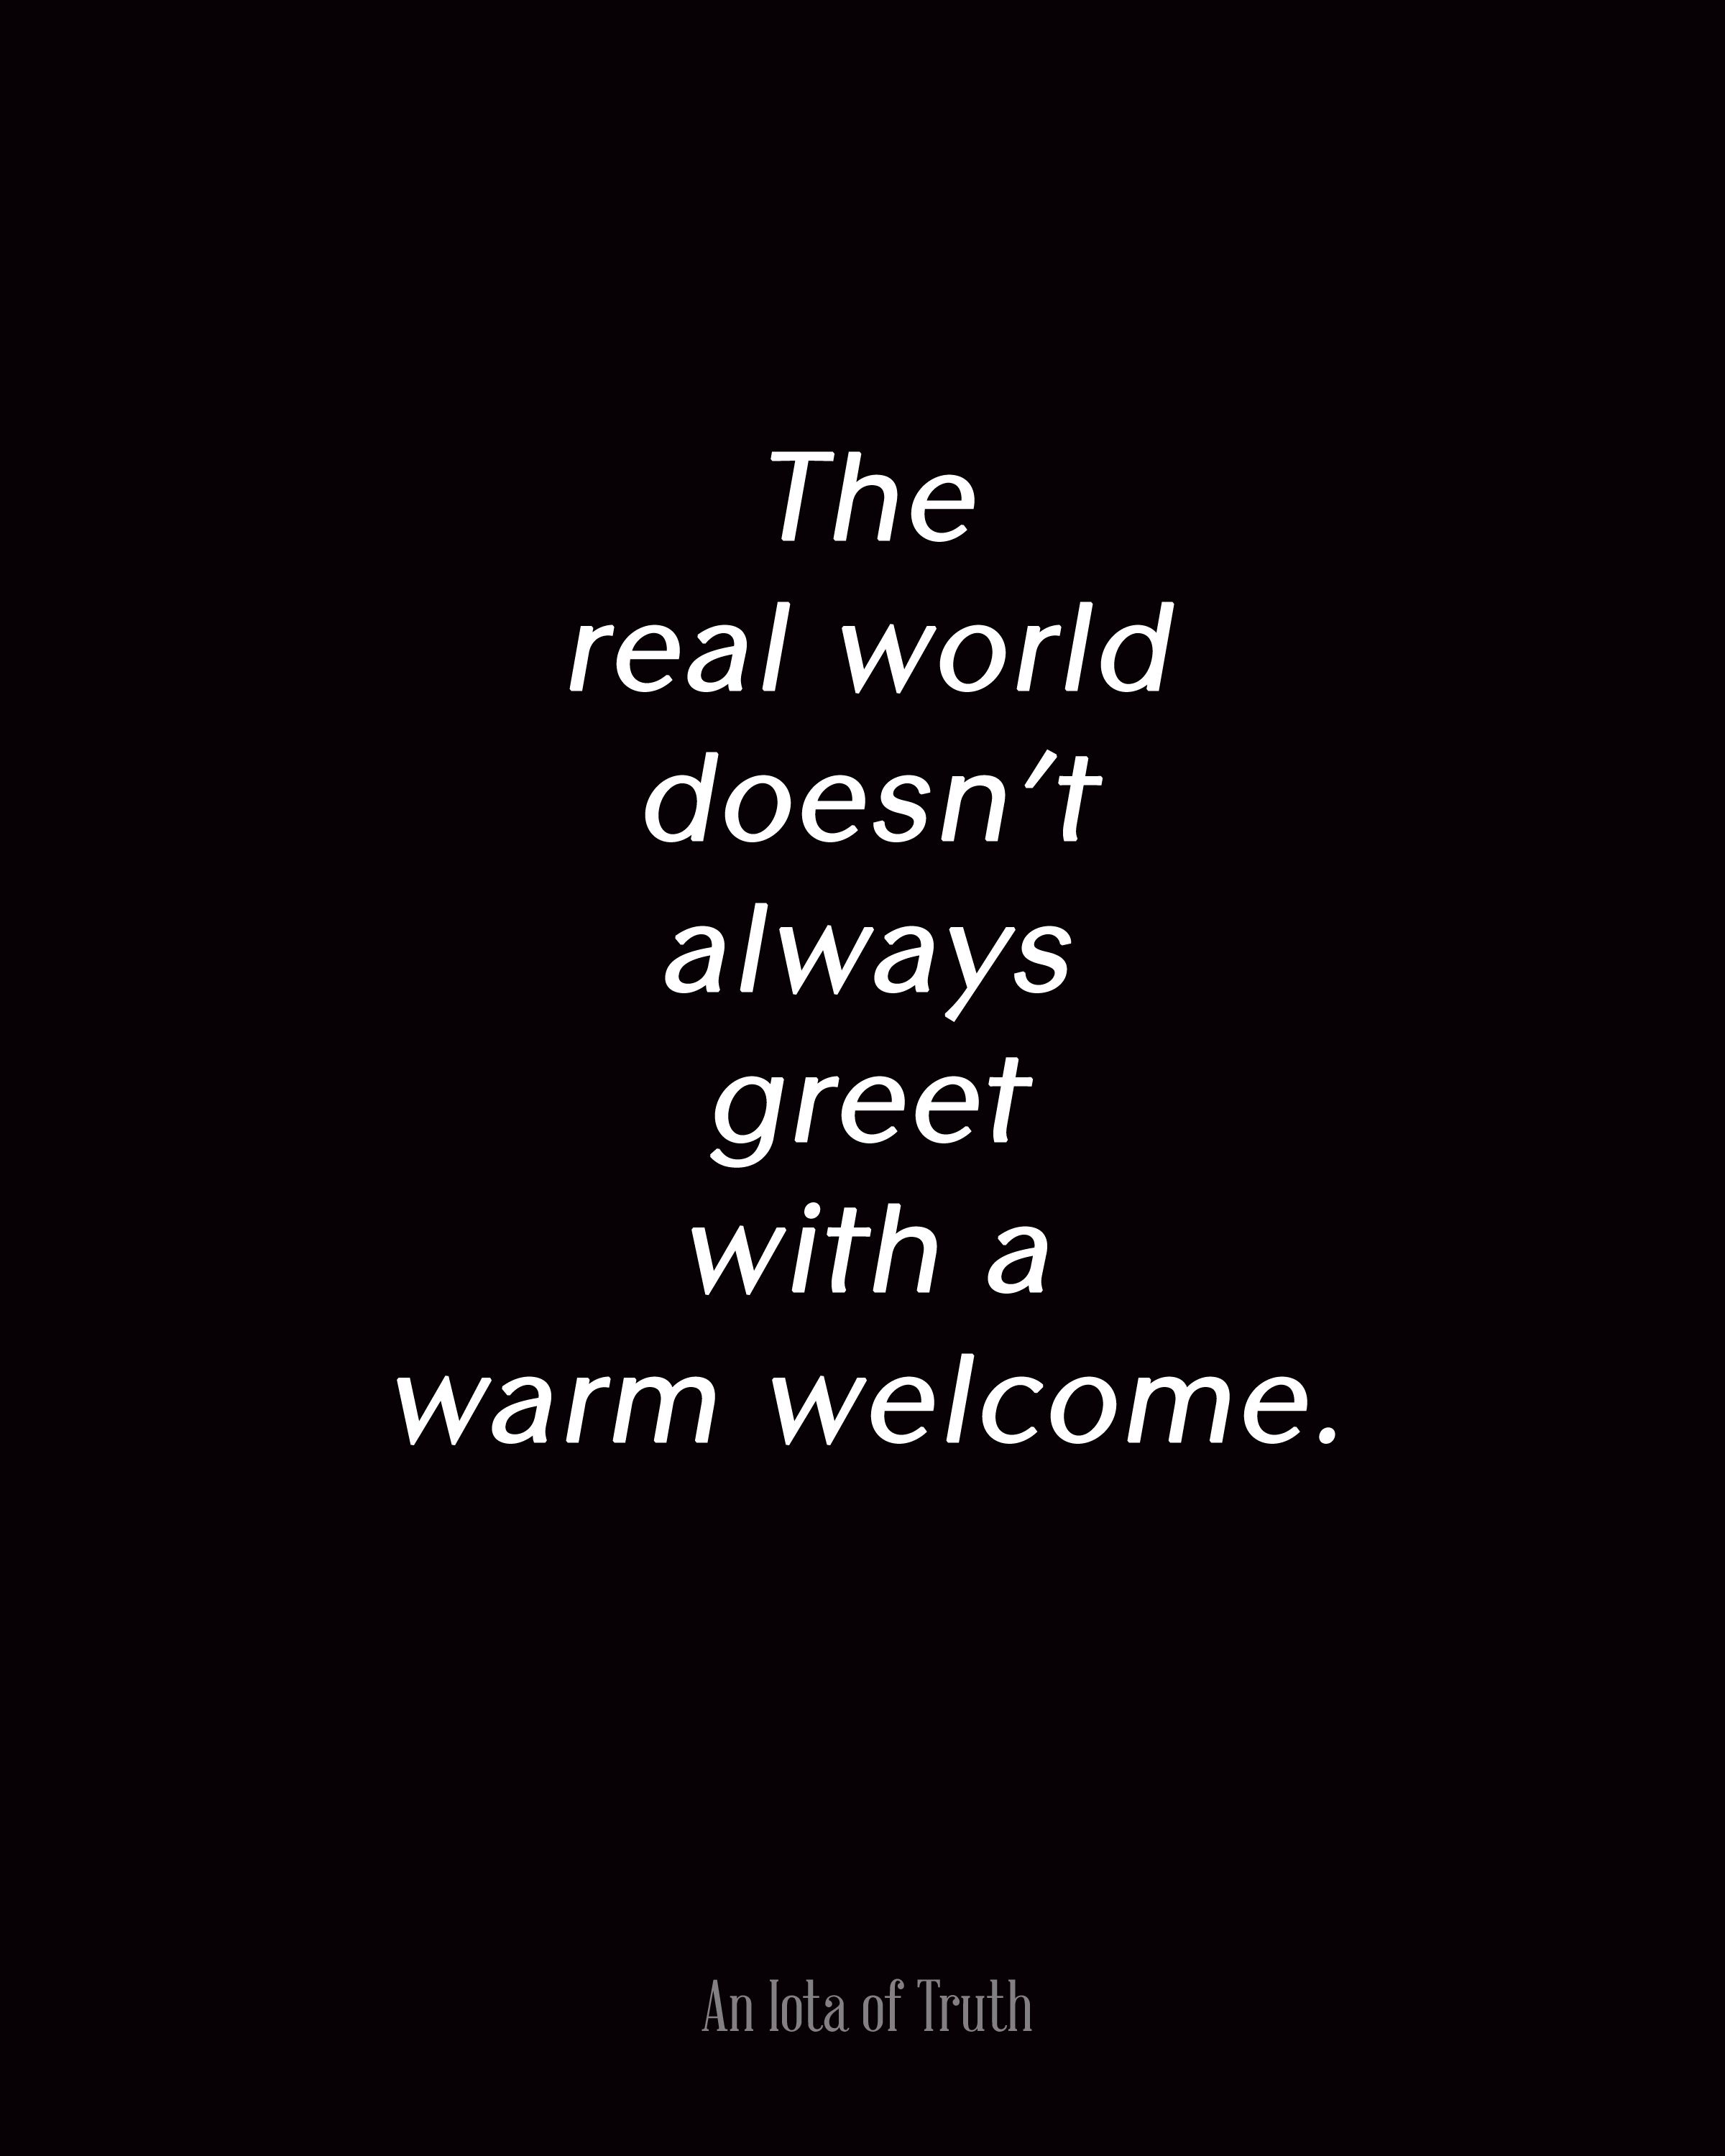 The real world doesn't always greet with a warm welcome